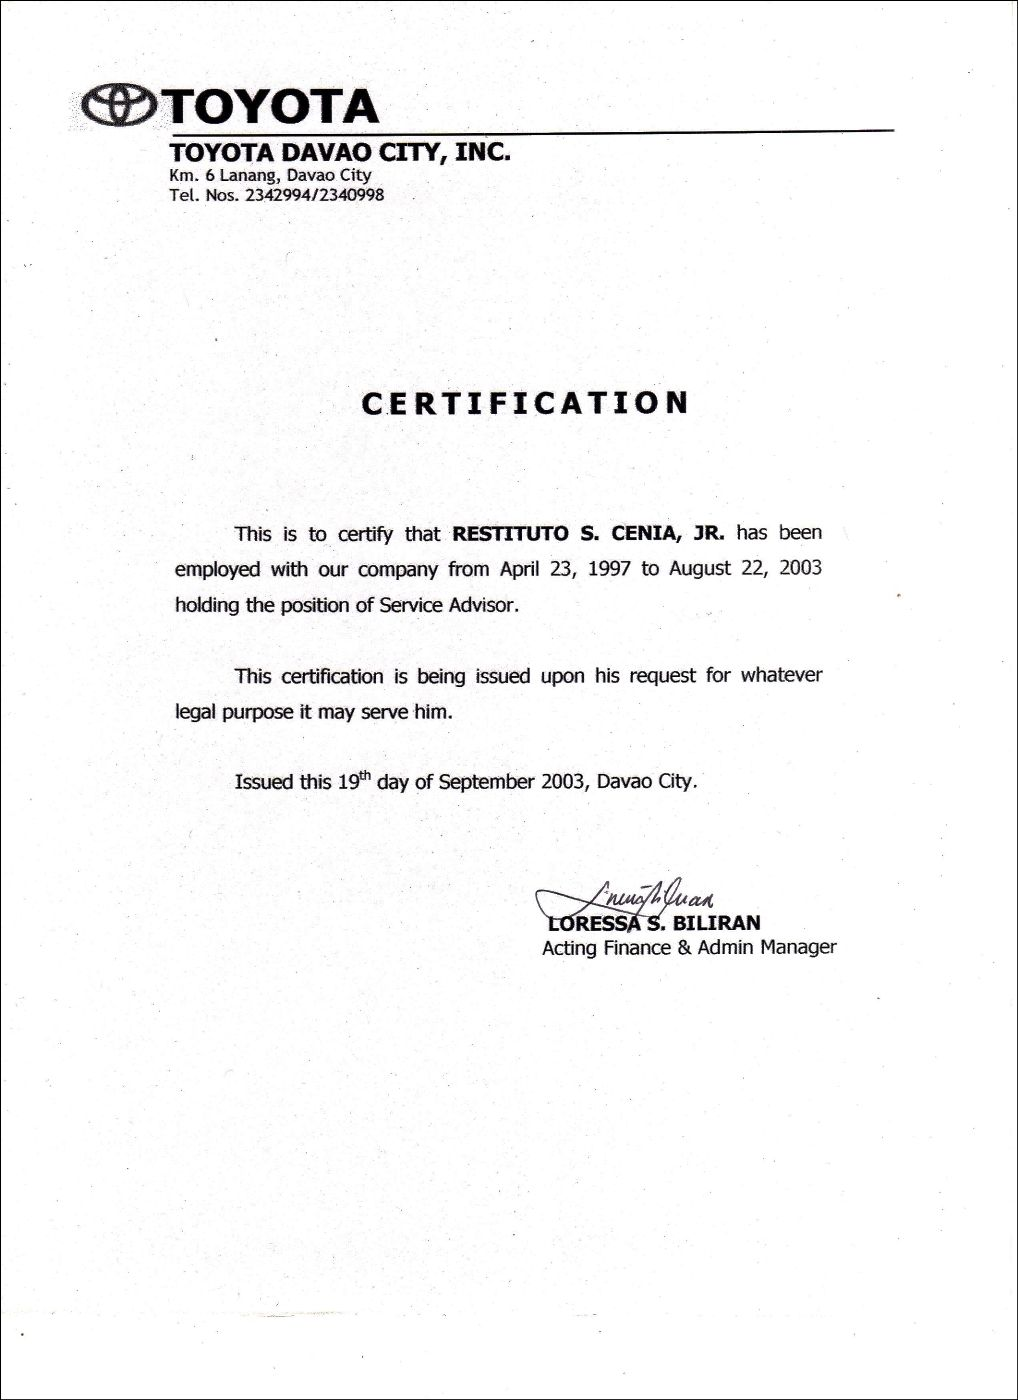 Template Of Certificate Of Employment 7